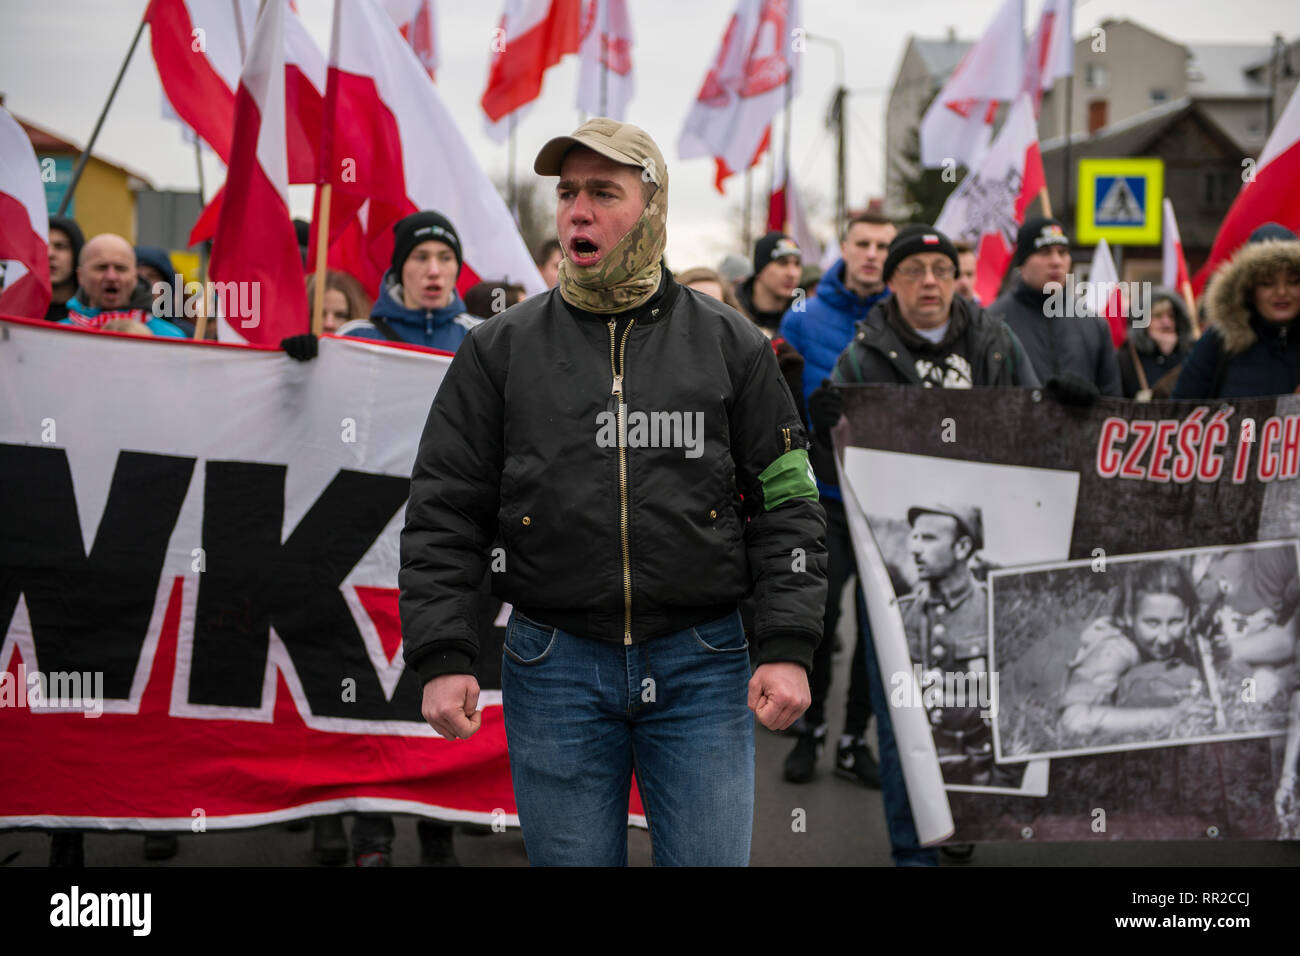 """A nationalist is seen shouting slogans during the march. Polish nationalists organized a commemorative march of the """"Cursed Soldiers"""" in the city of Hajnowka next to the Belarusian border. The Cursed Soldiers also known as the Doomed Soldiers were anti-communist resistant fighters after WWII, however they were also famous of committing crimes against civilians, mostly ethnic Belarusians. - Stock Image"""